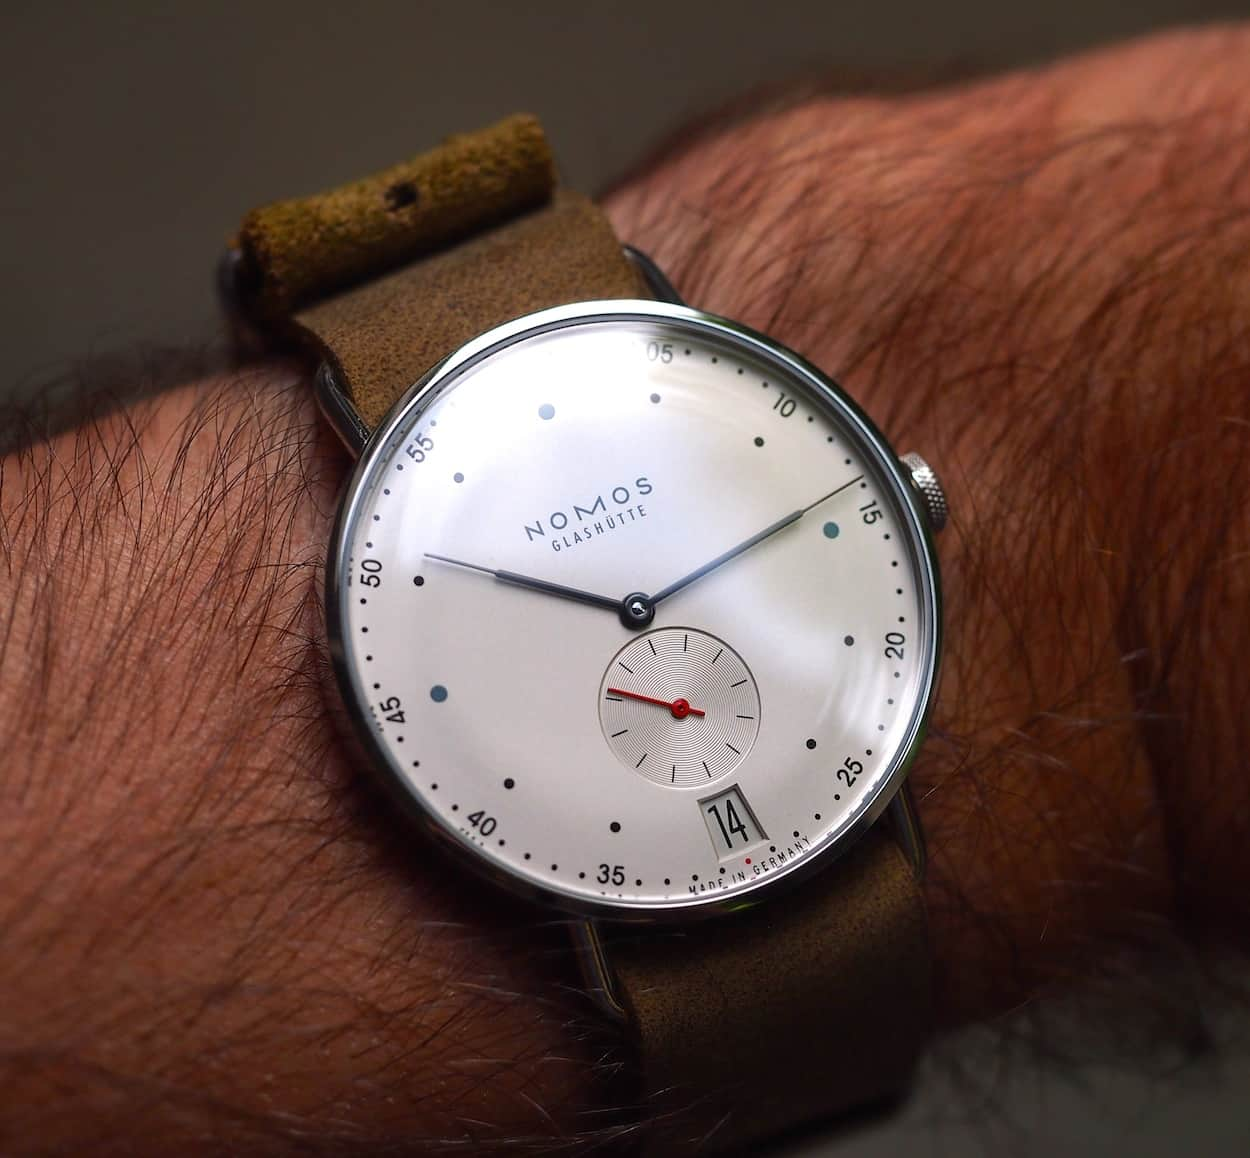 Nomos Metro 38 on the wrist